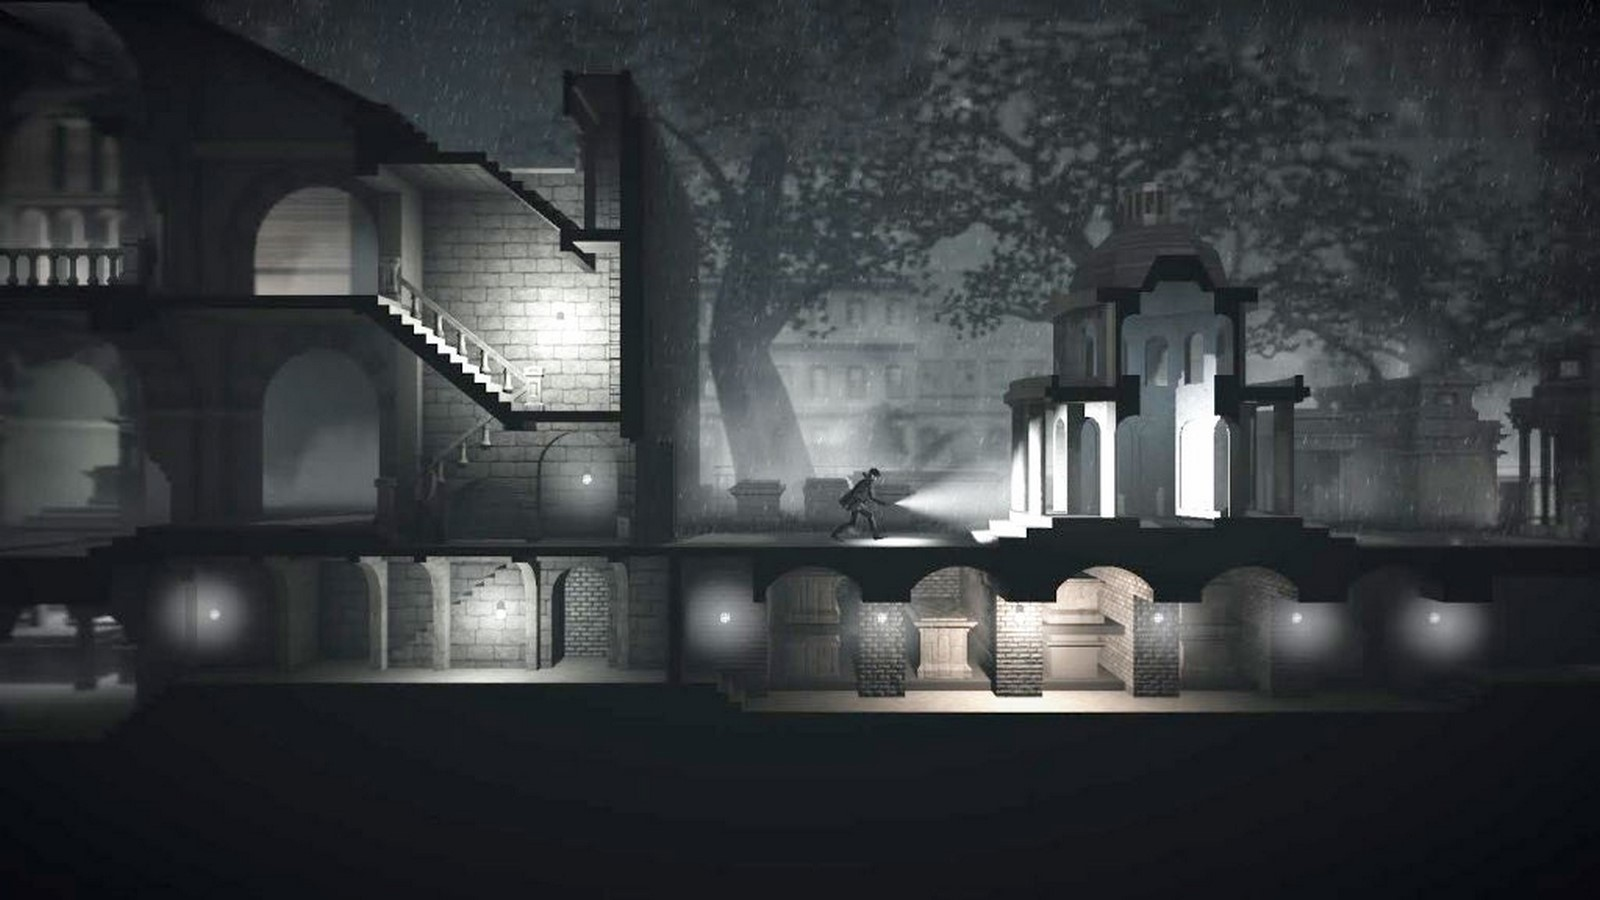 8 More Architectural games to help you burn through your creative block - Sheet1